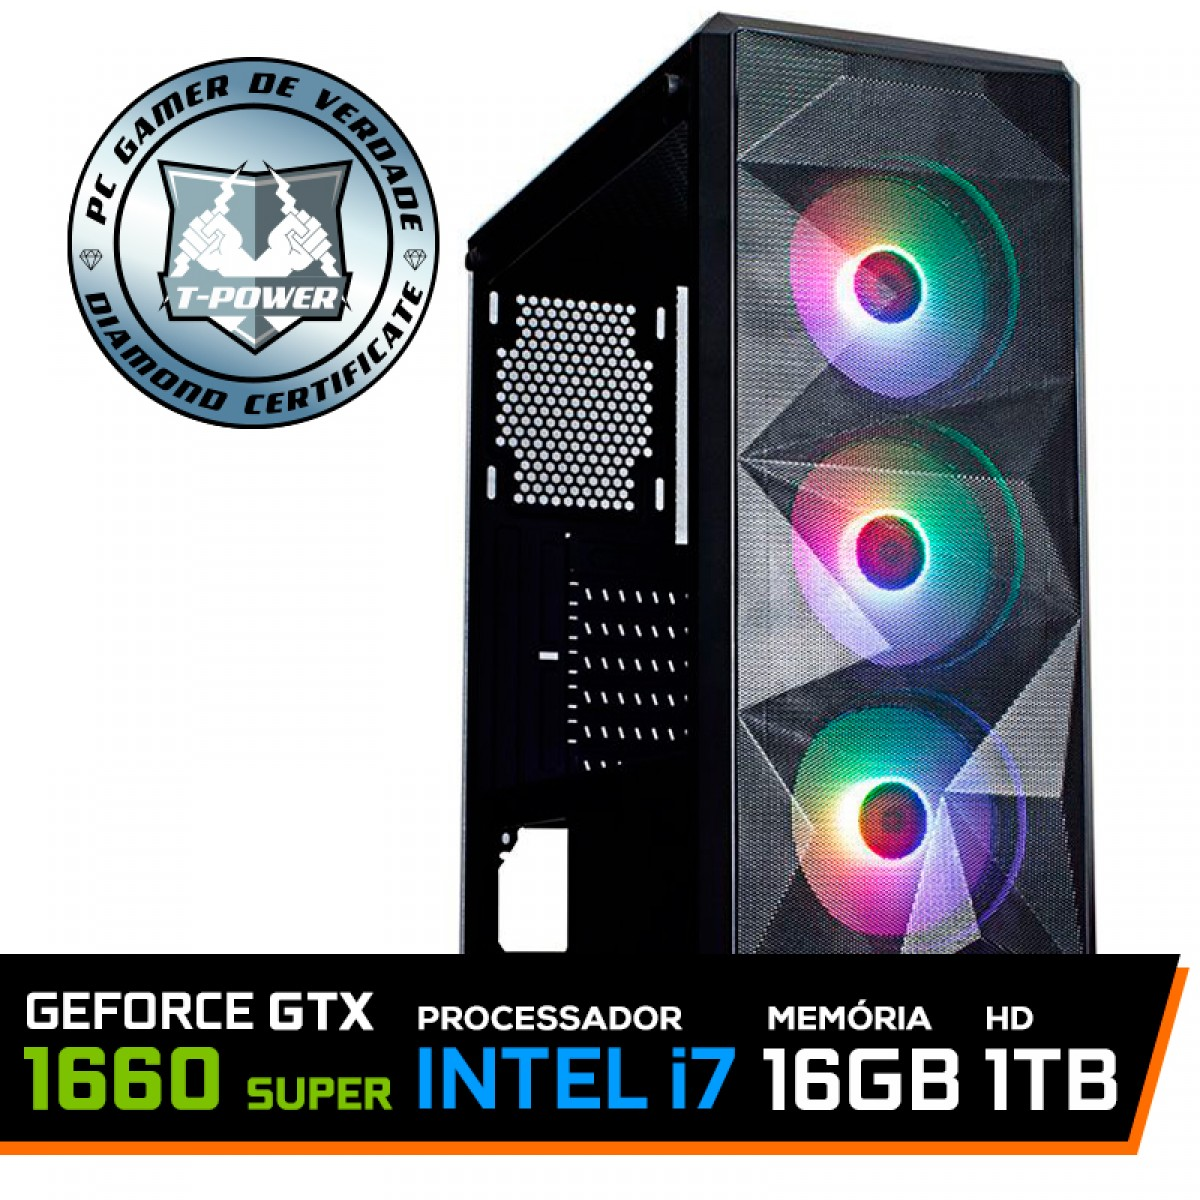 Pc Gamer T-Power Strong Lvl-4 Intel Core i7 10700 / GeForce GTX 1660 Super 6GB / DDR4 16GB / HD 1TB / 600W